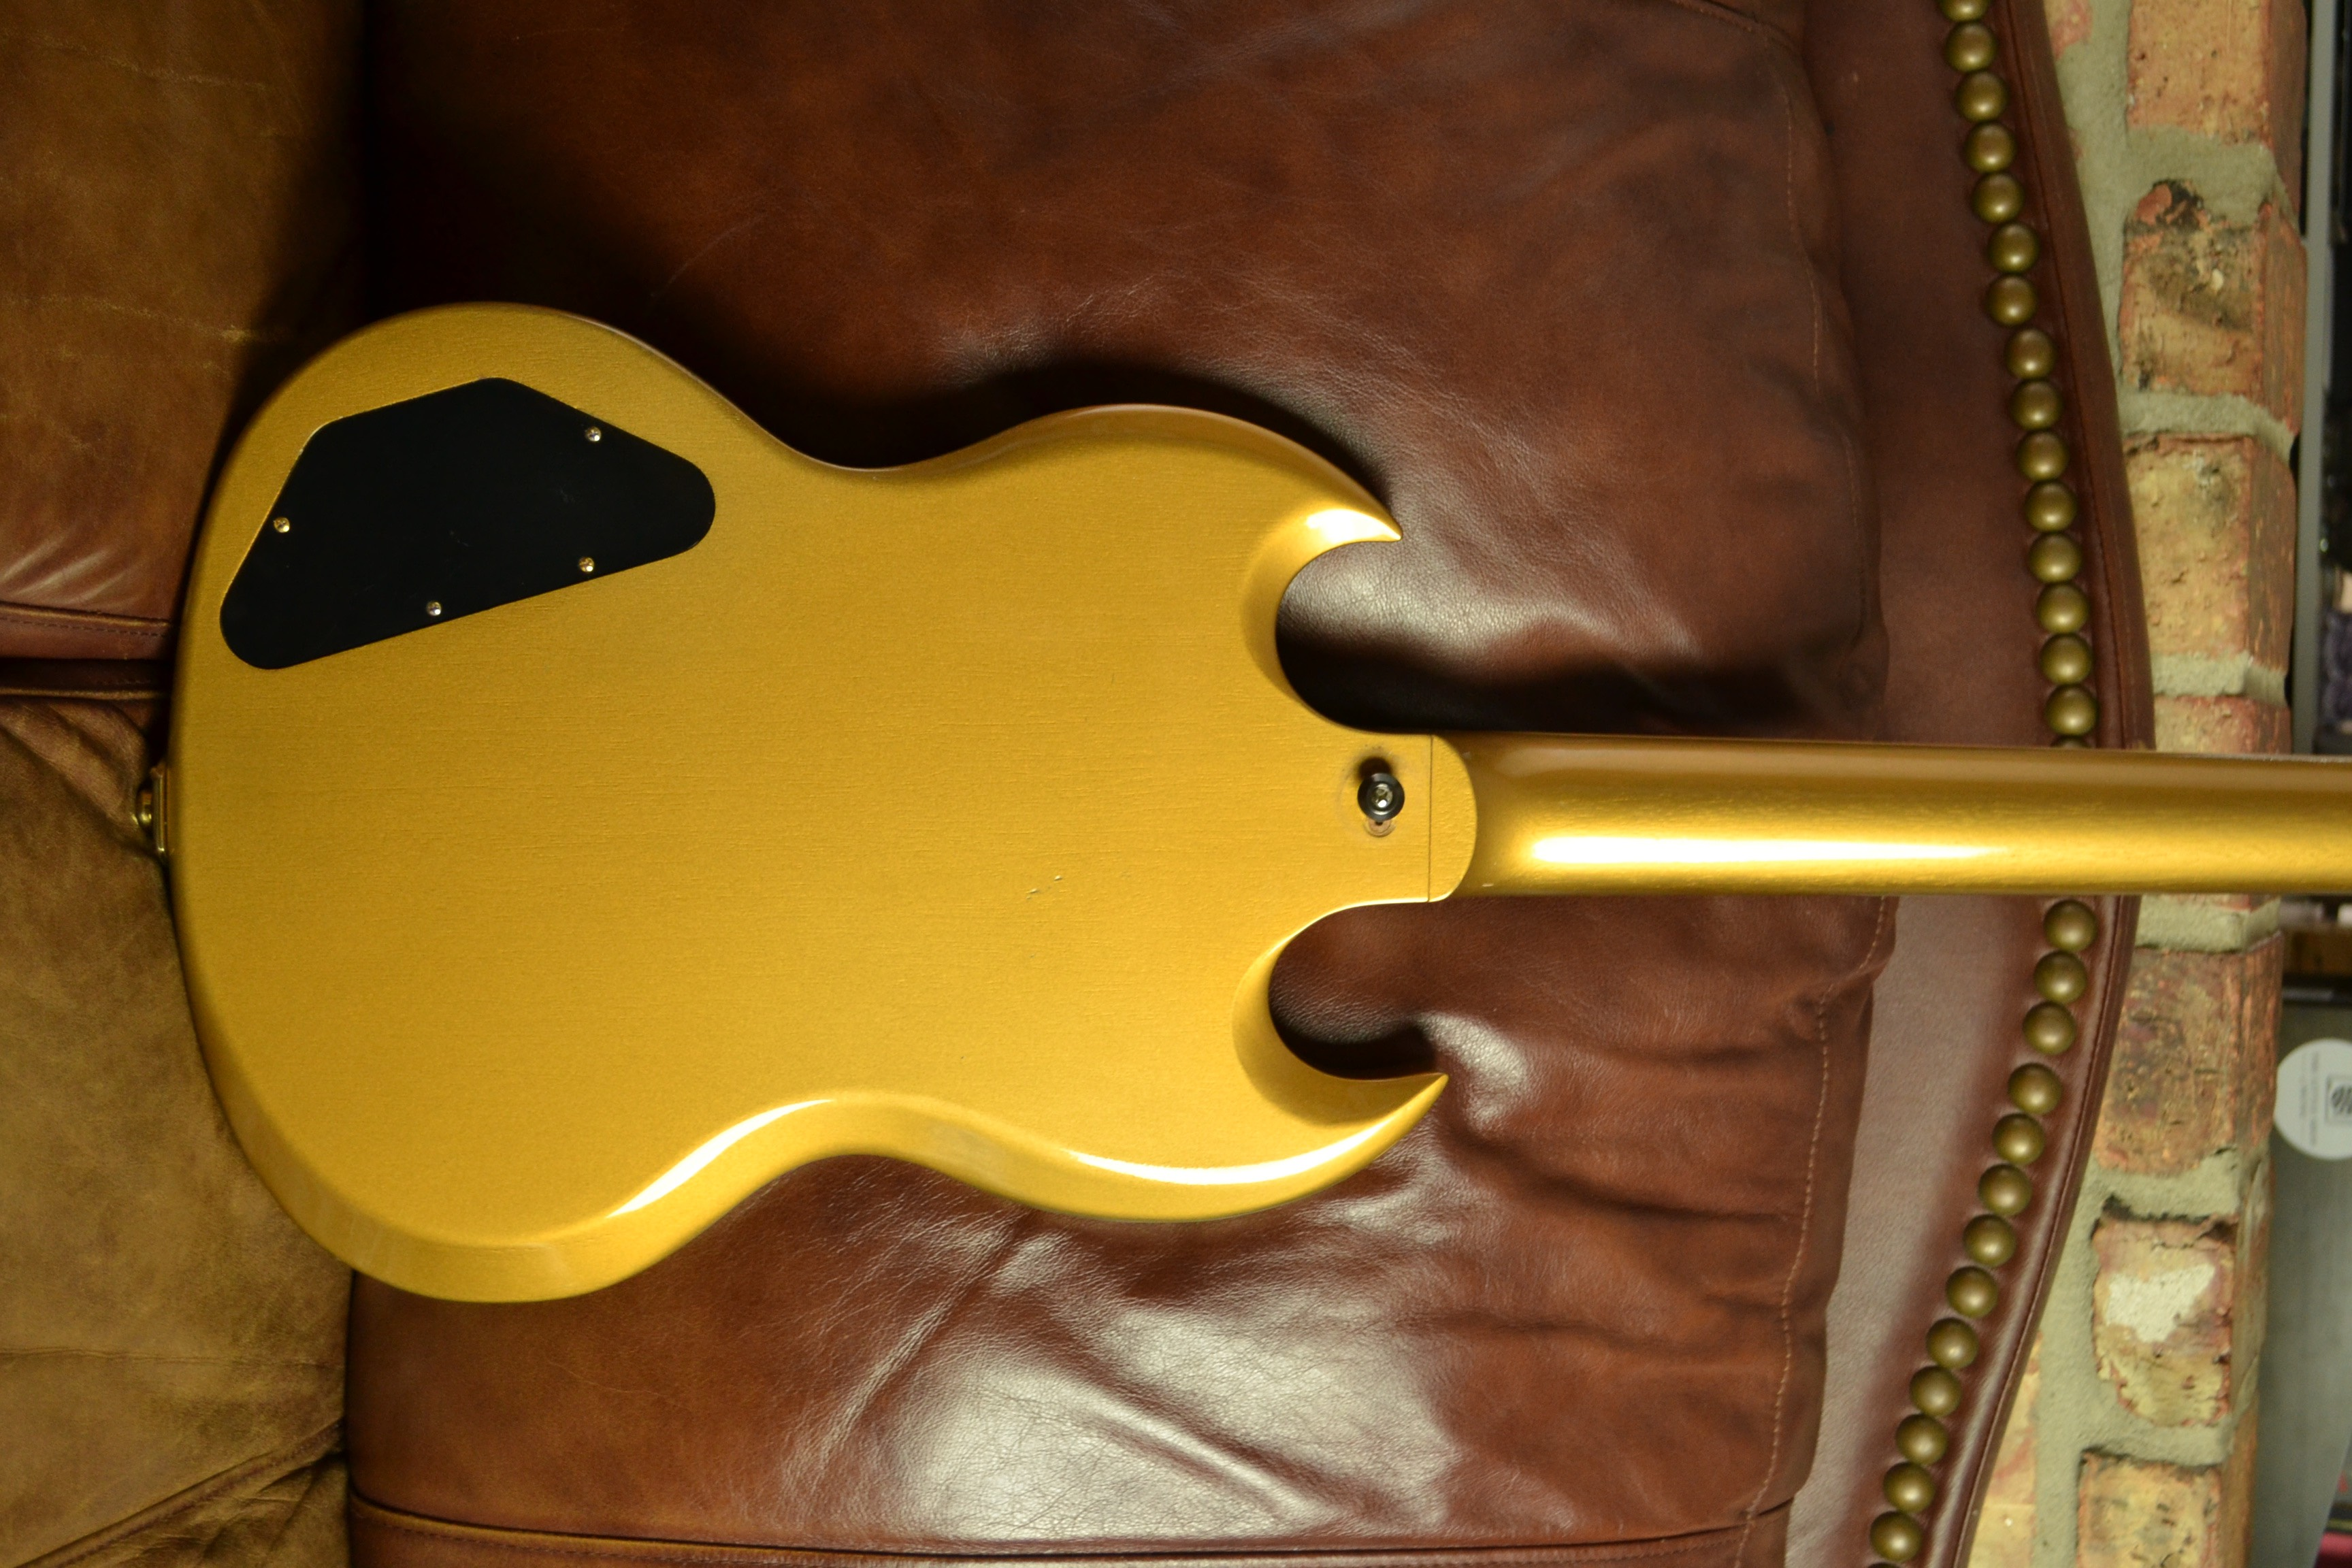 Gibson SG Gold Buillion